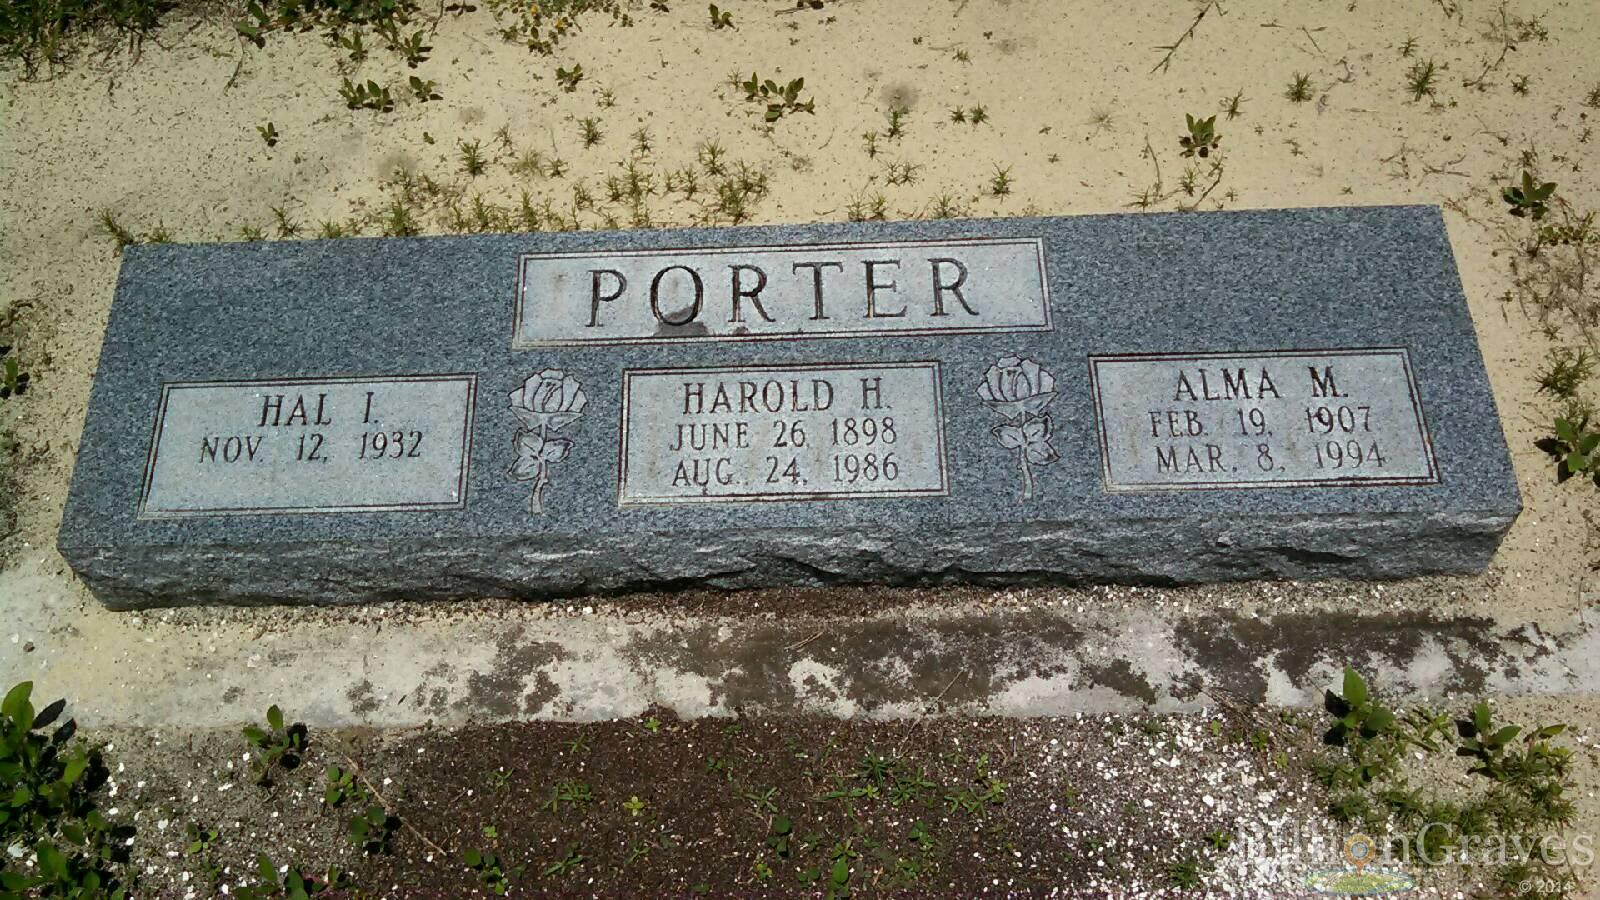 Avon Park (FL) United States  city photos gallery : ... Cemetery, and Grave Record | Avon Park, Florida, United States 9033039